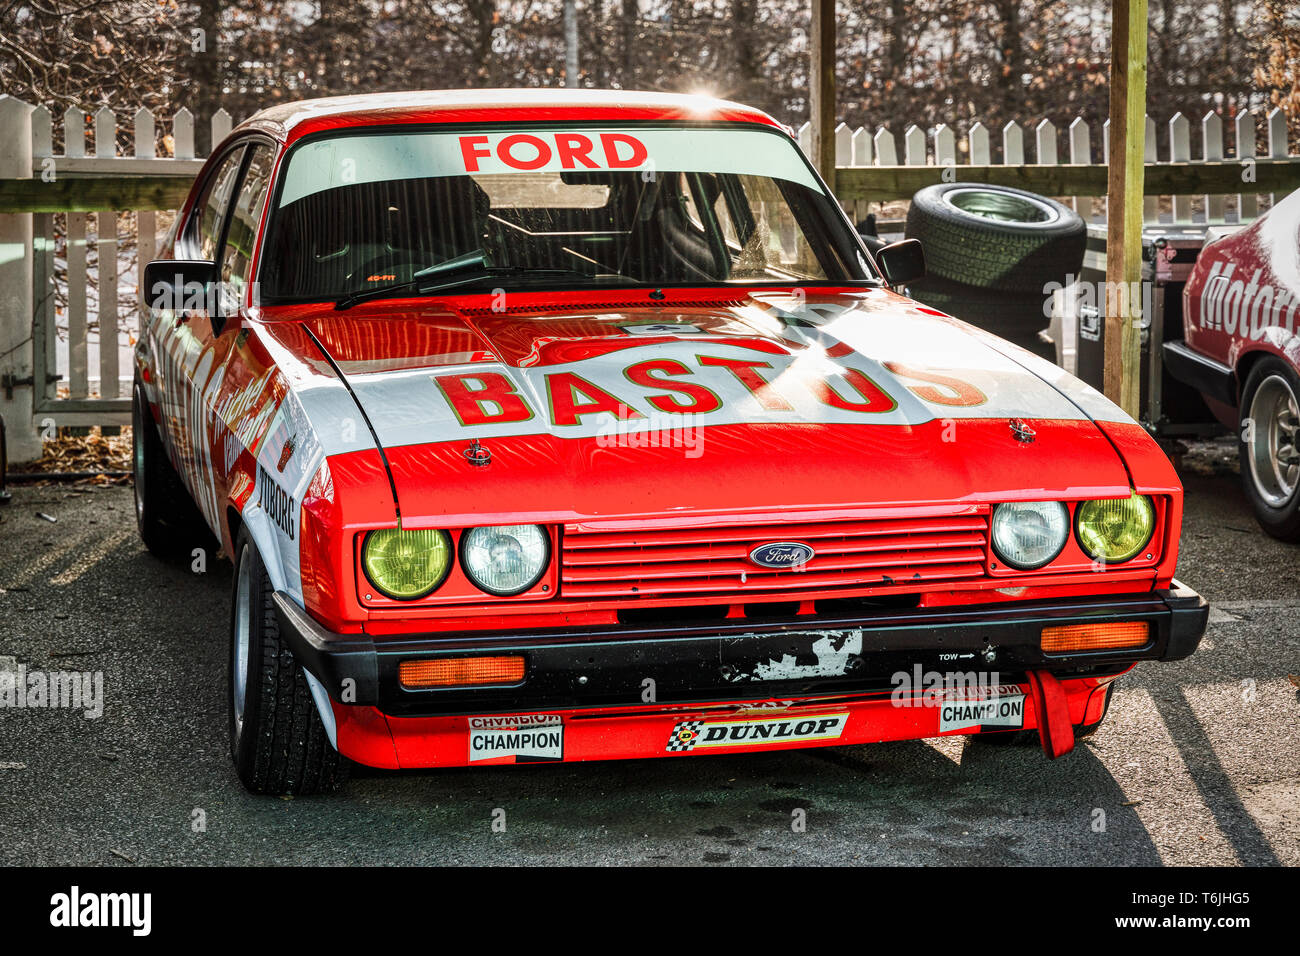 Its Classic 3.0 >> 1980 Ford Capri Mkiii 3 0s In It S Bastos Livery In The